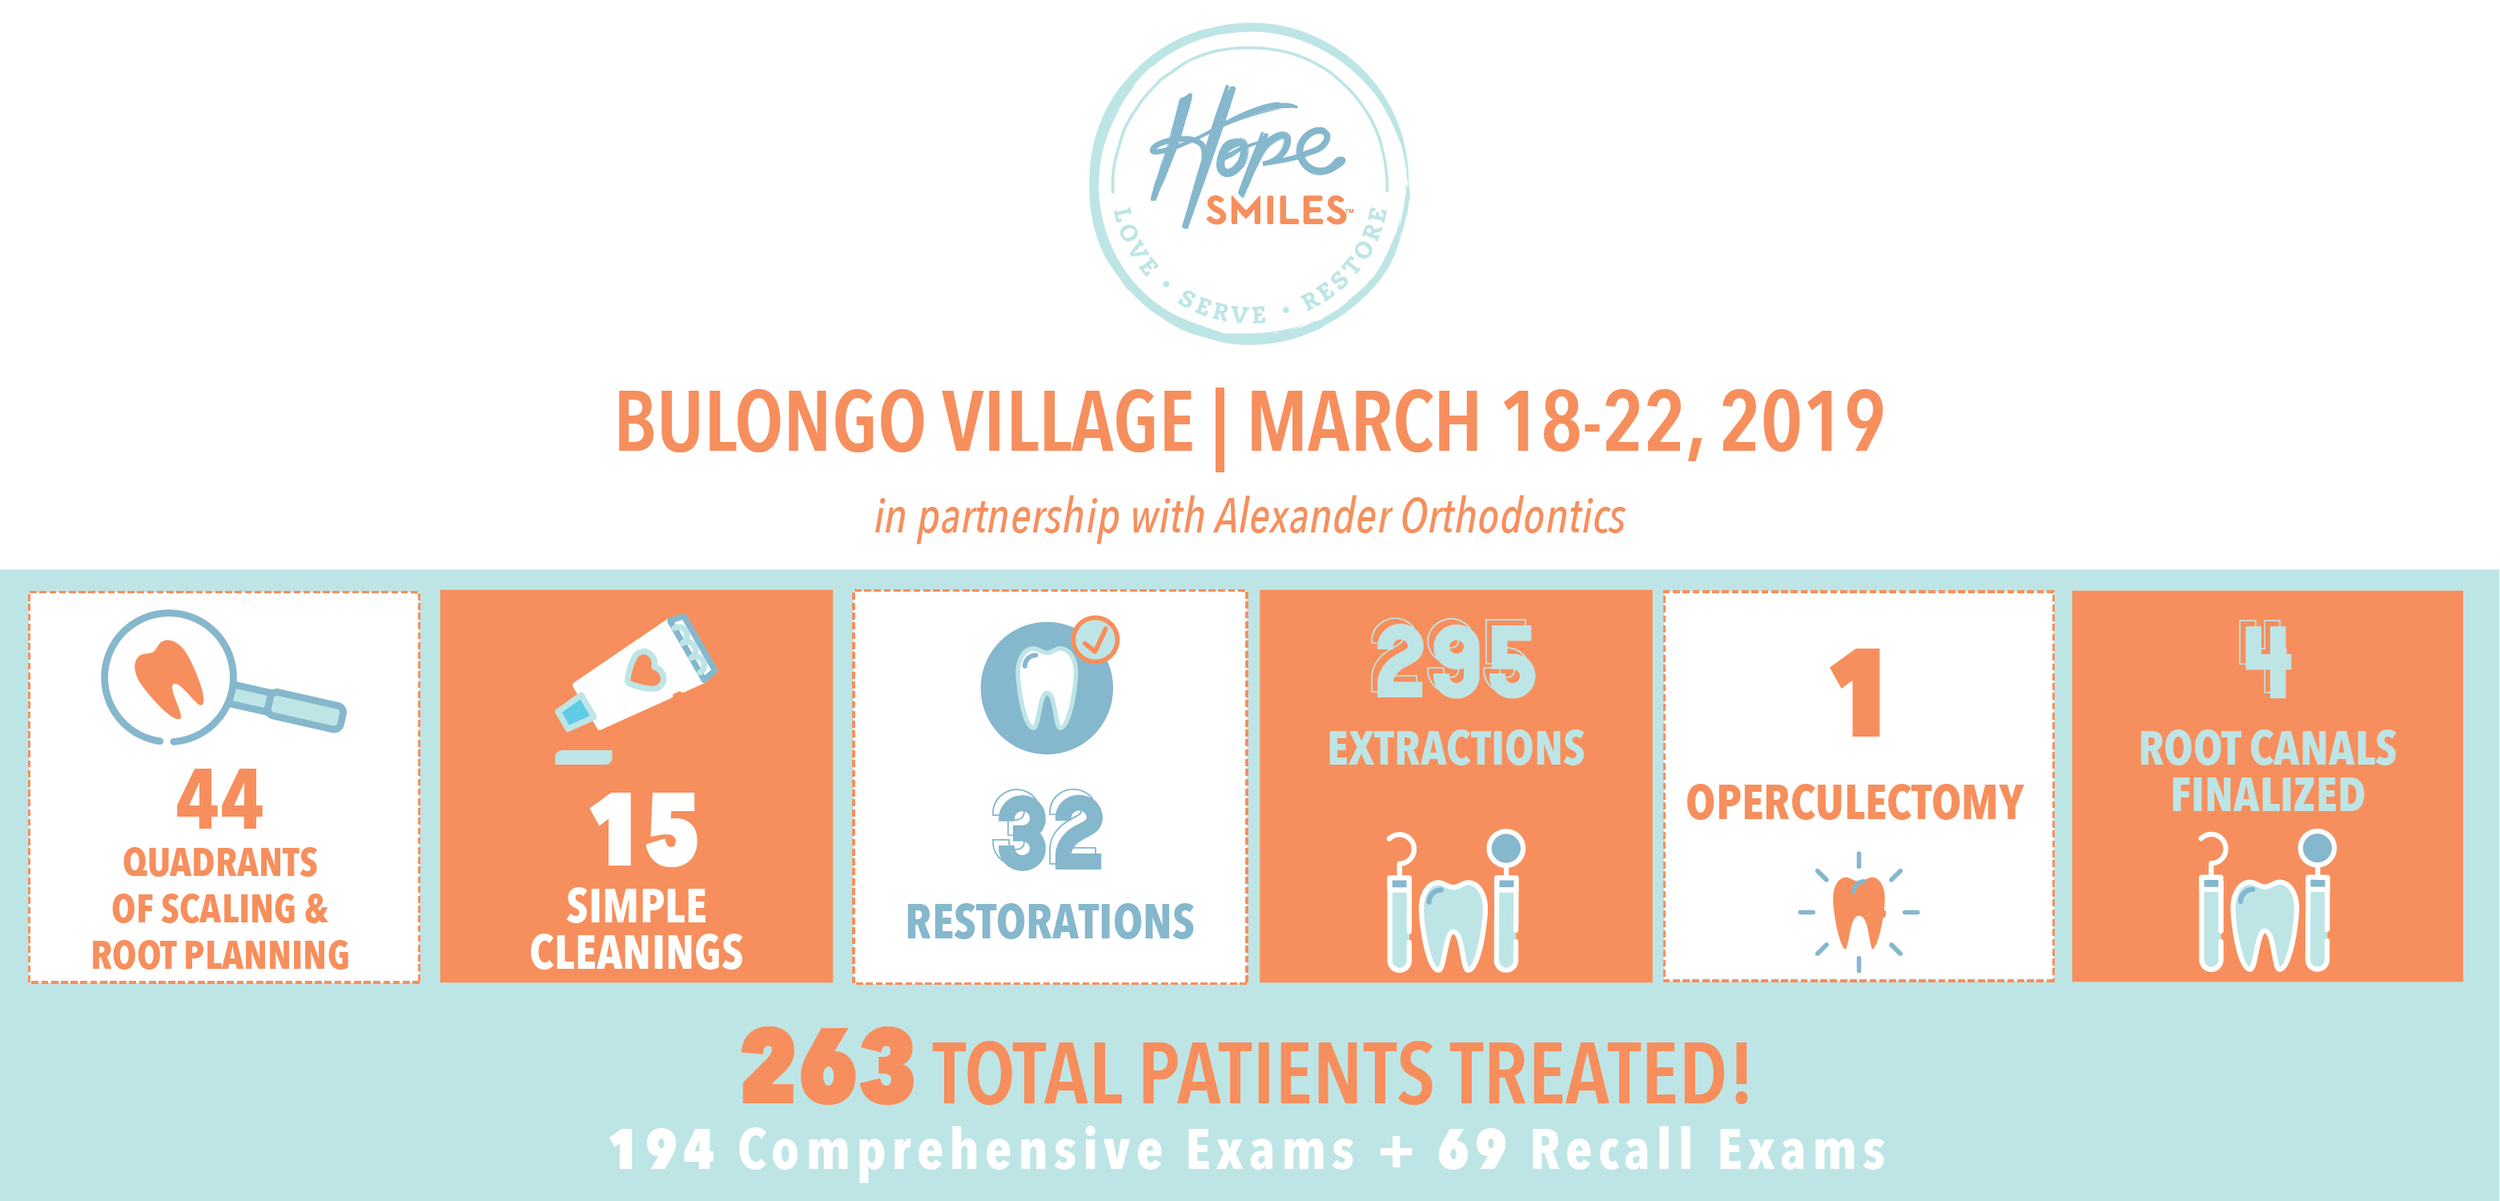 HS_Bulongo Village Outreach Impact-01.png